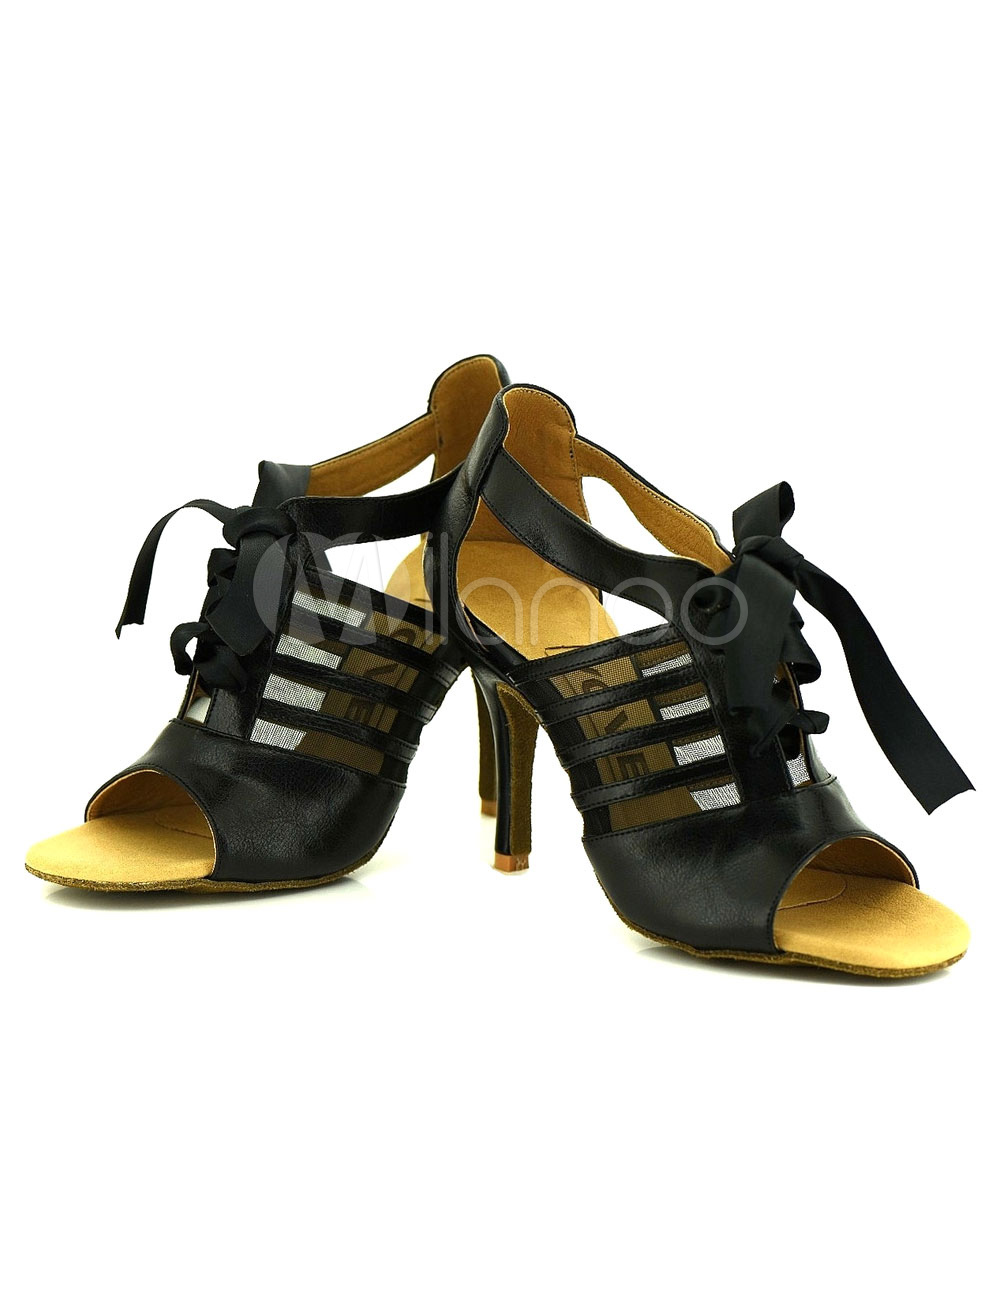 shoes affordable for any budget